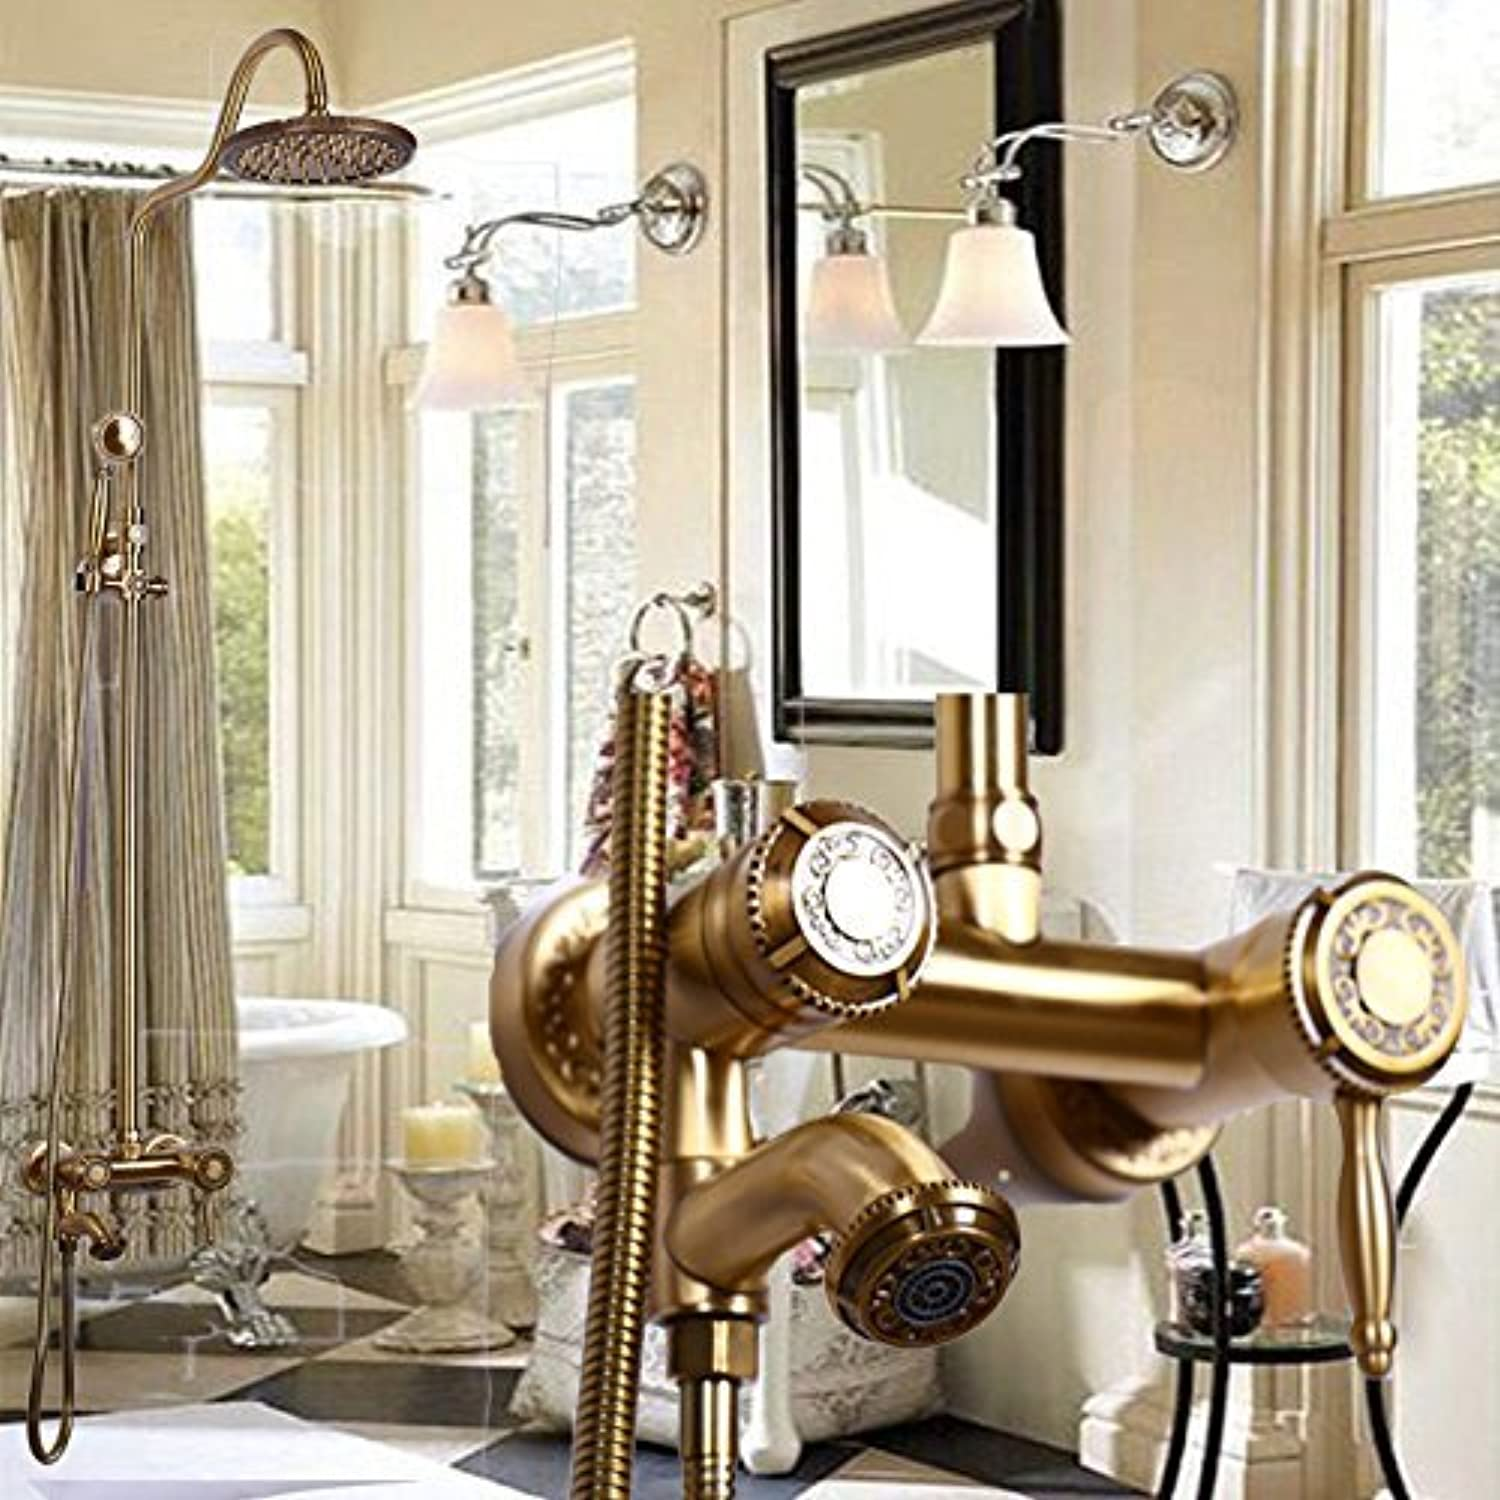 Home Bathroom Ancient Bronze Elevator European Shower Combination Sculpted Lace of Control of The Temperature of The Cold Water of The Nozzles of Scale